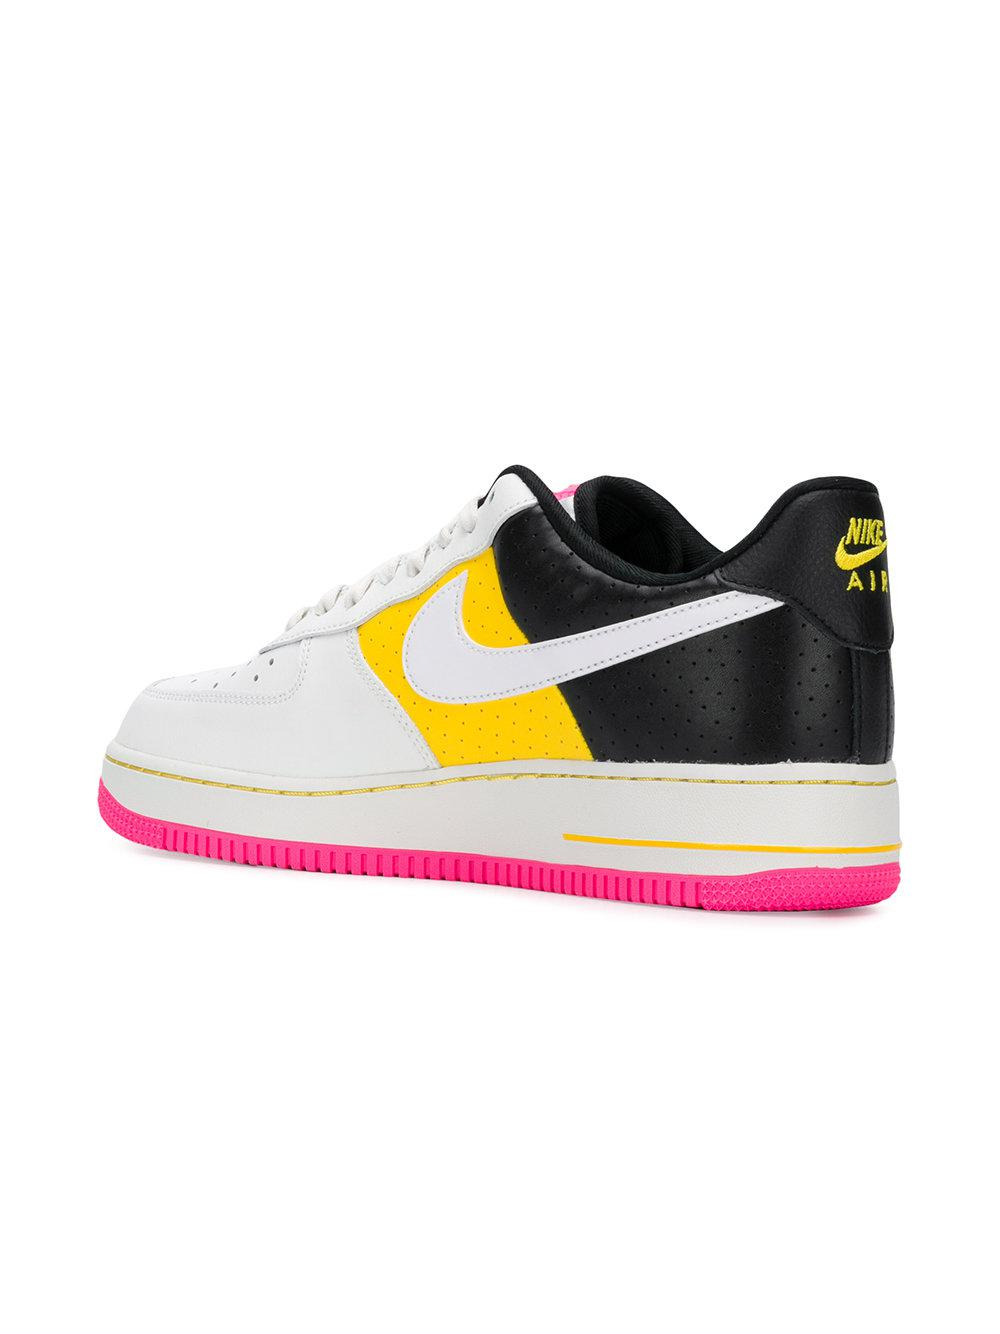 Nike Leather Air Force 1 '07 Se Moto Sneakers in White